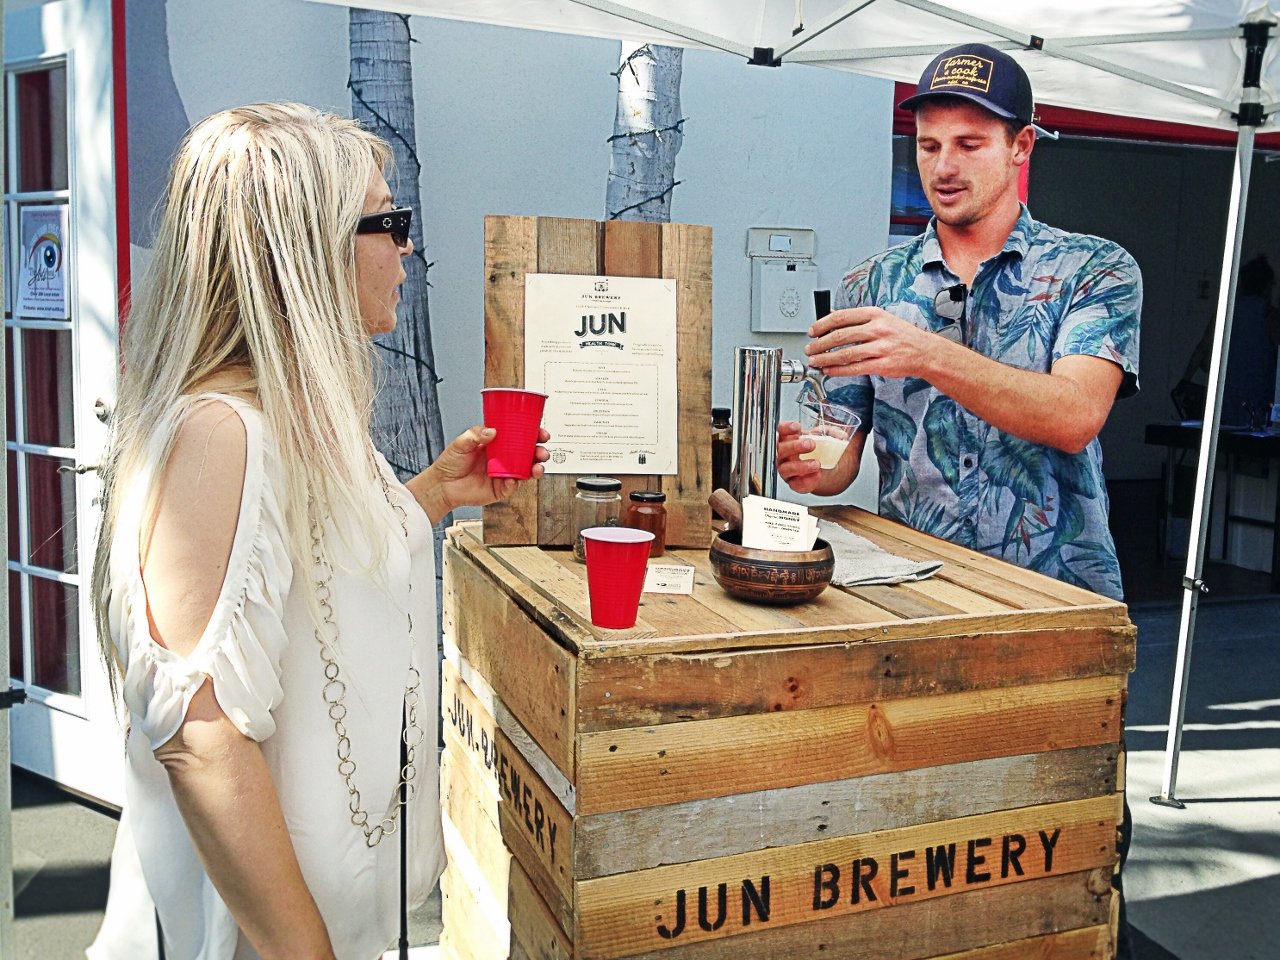 Funk Zone Tasting, Jun Brewery, Santa Barbara by Julie Miche